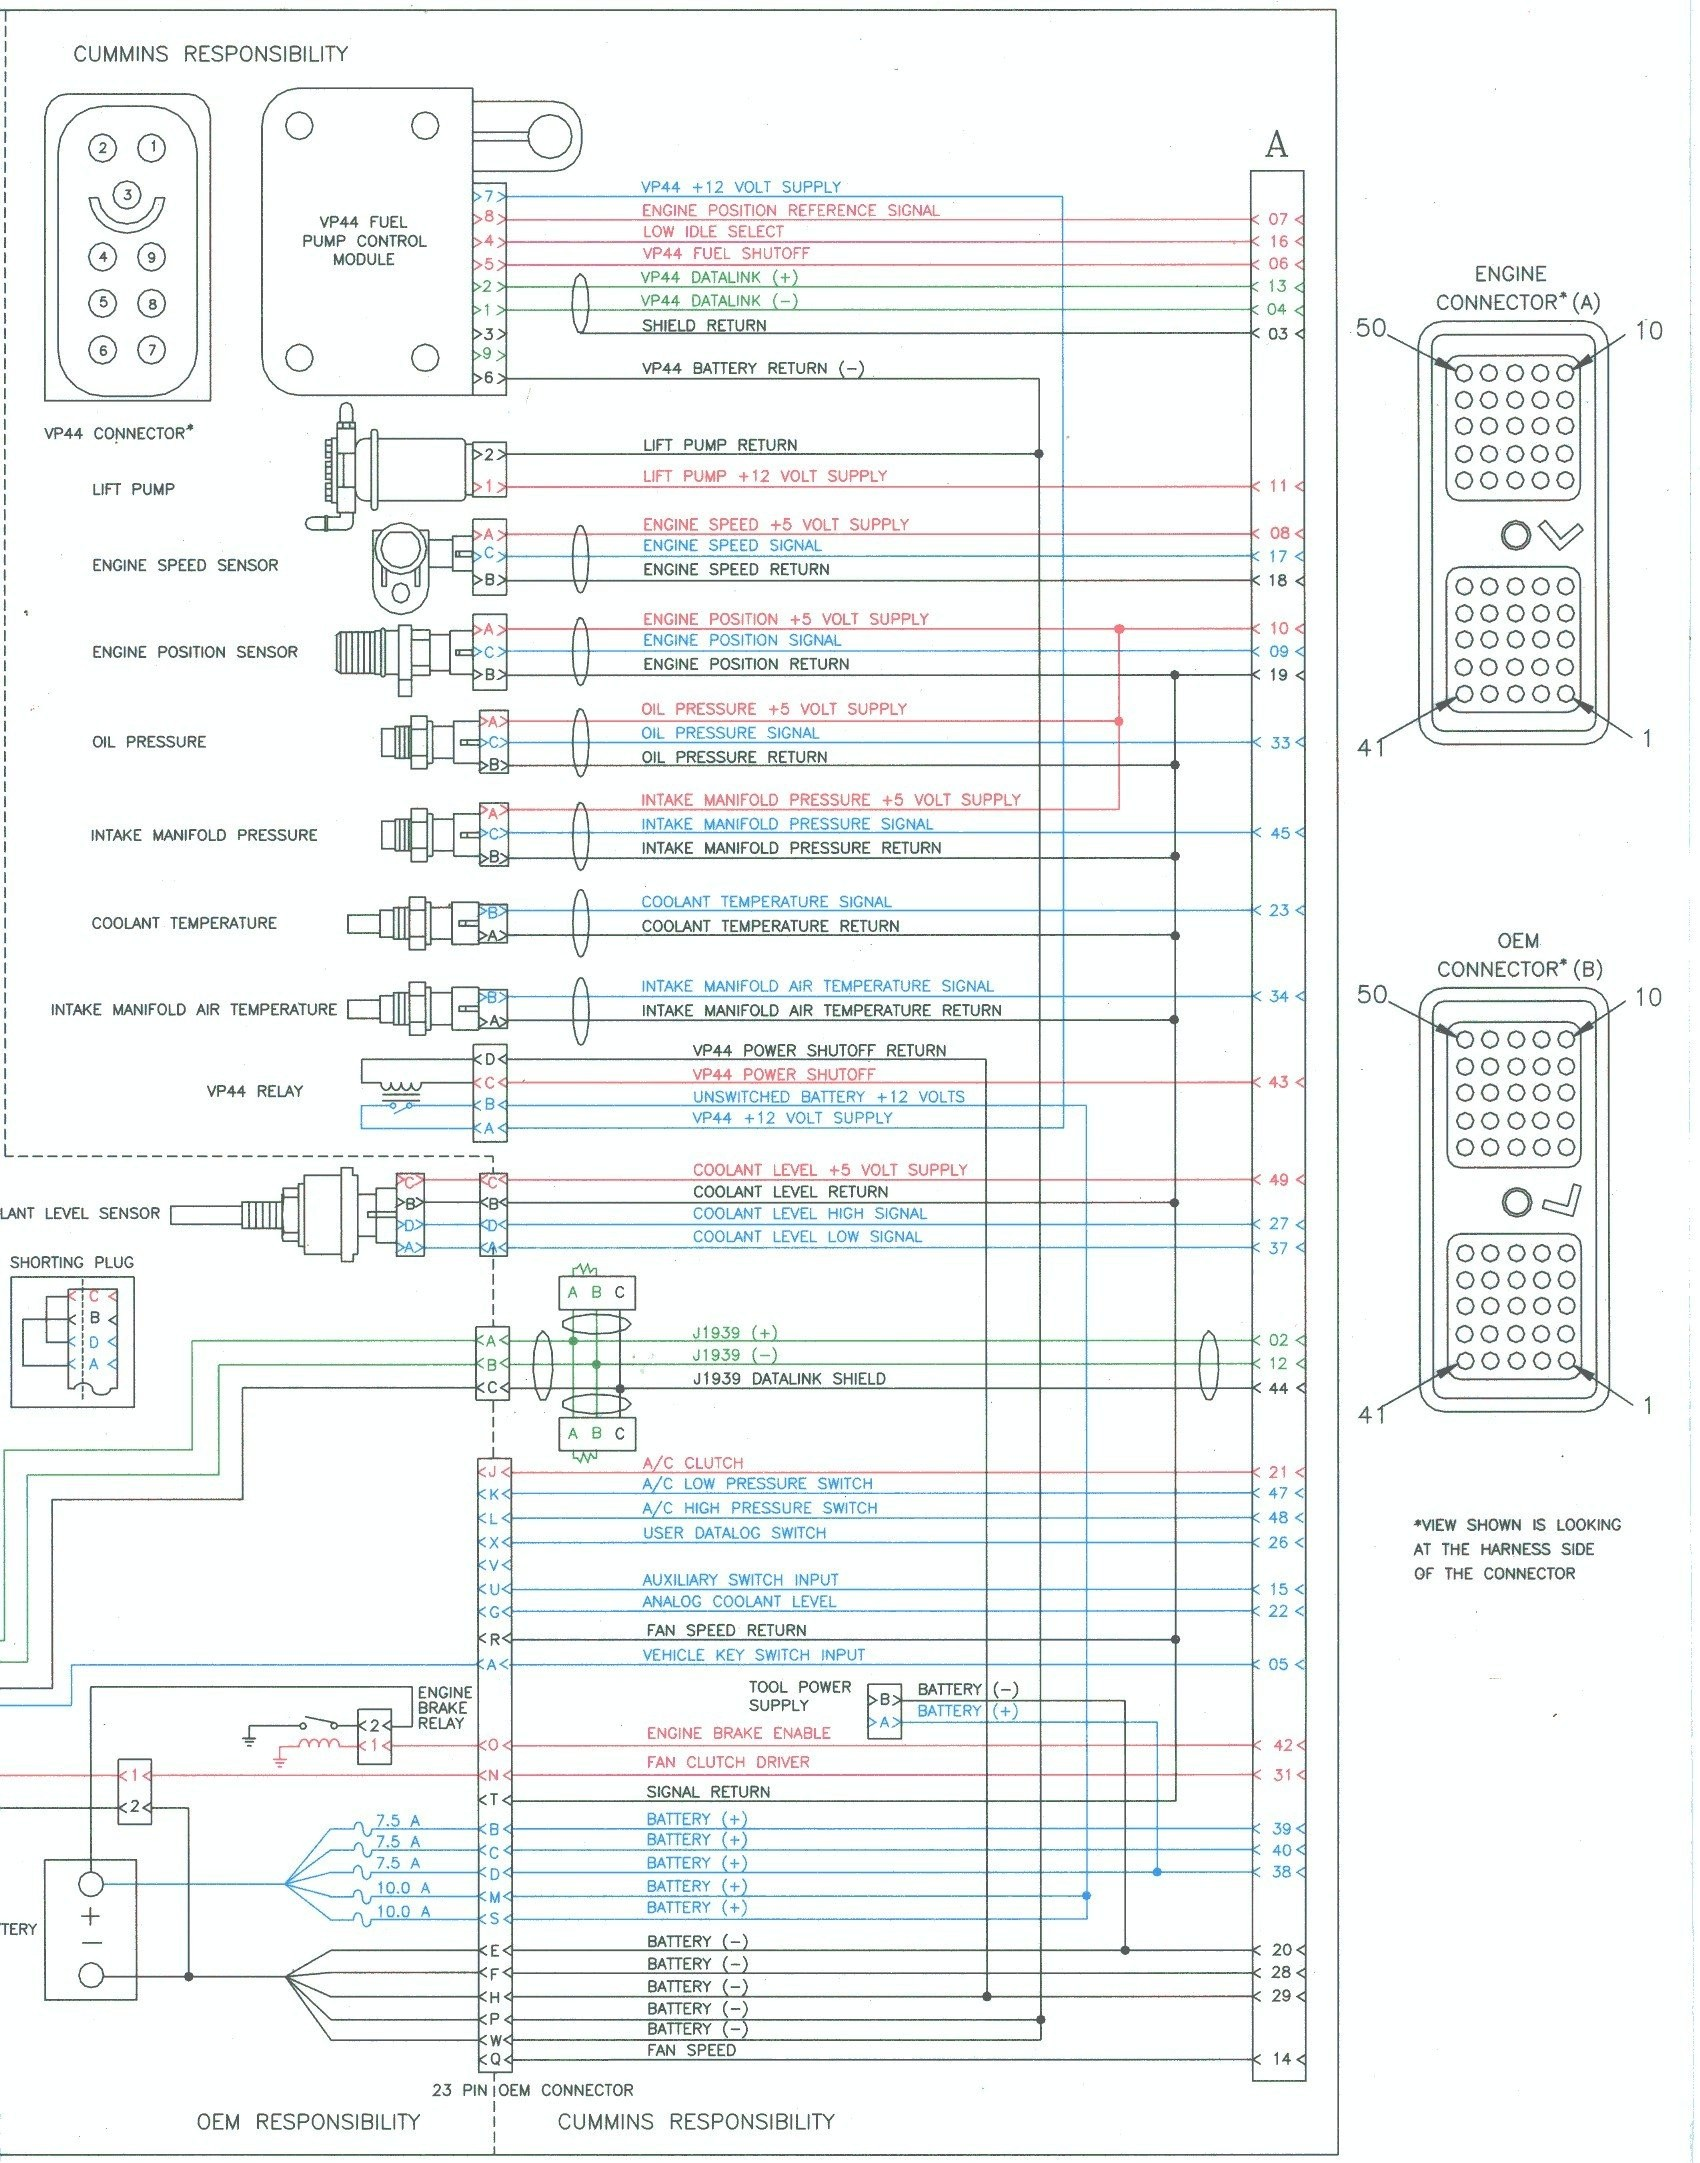 02 Dodge 4 7 Engine Diagram Detailed Schematics 1999 2 10 Ram 1500 Thermostat Trends My Durango